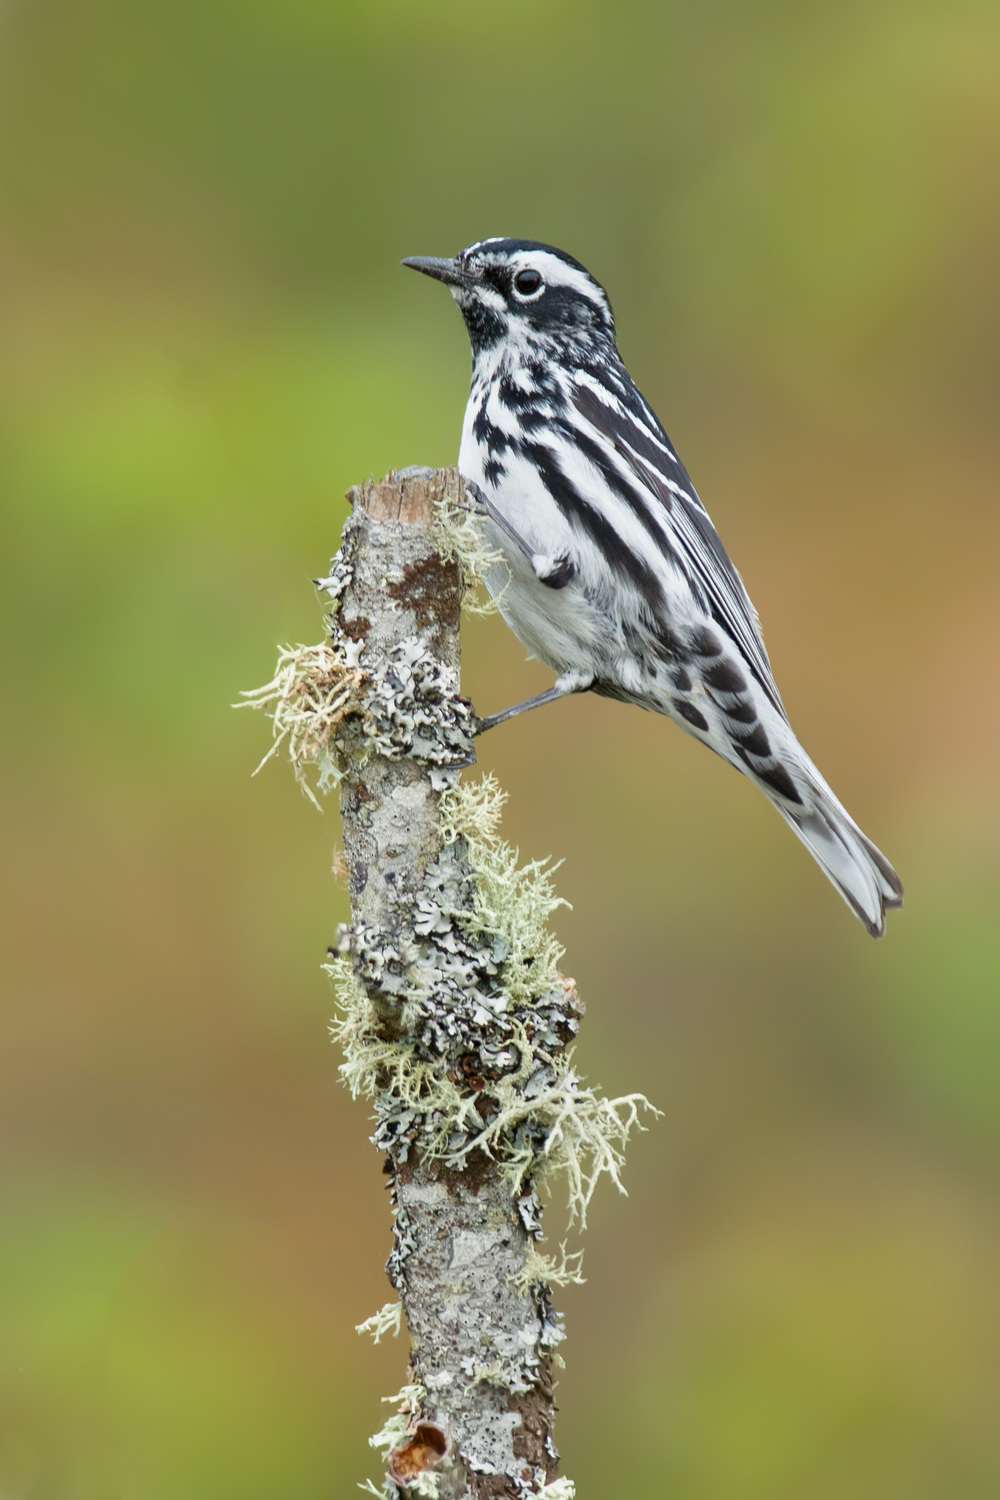 black-and-white_warbler_EI8C0314451b.jpg